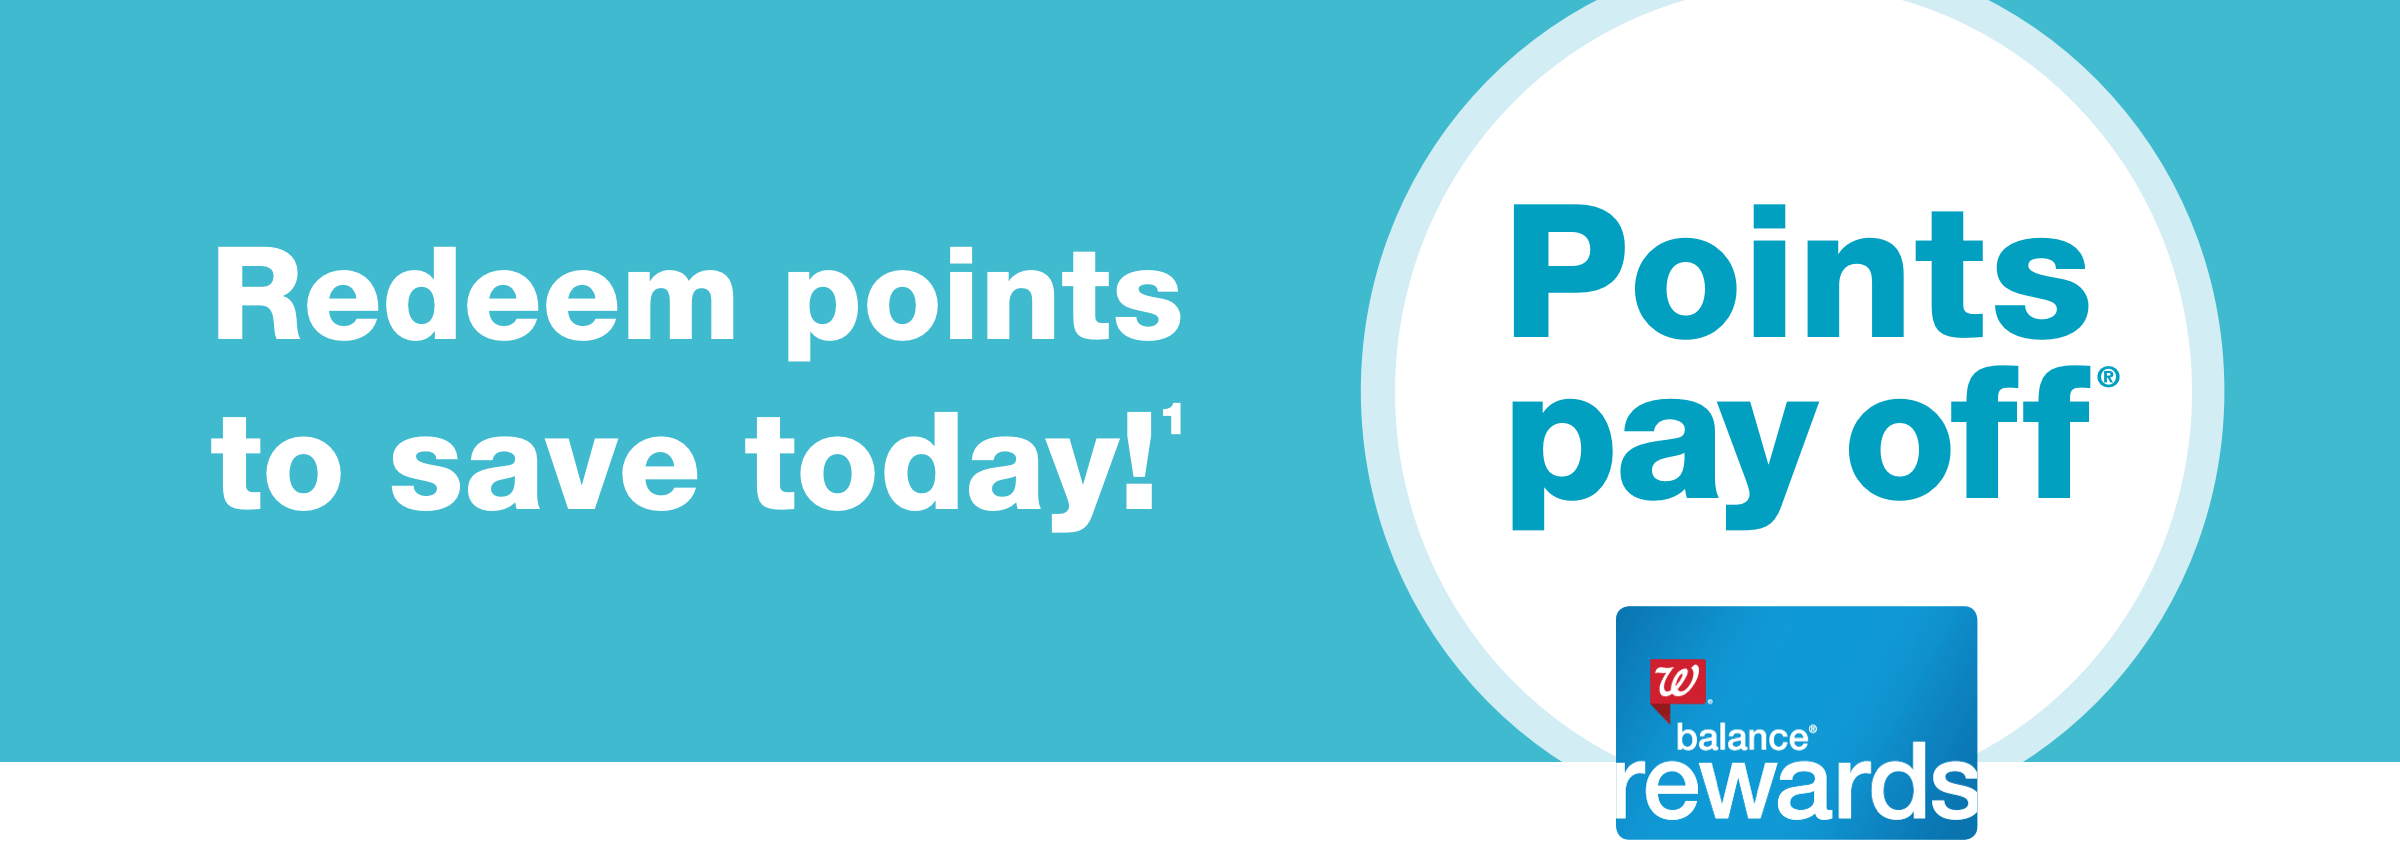 Redeem Points To Save Today 1 Pay Off